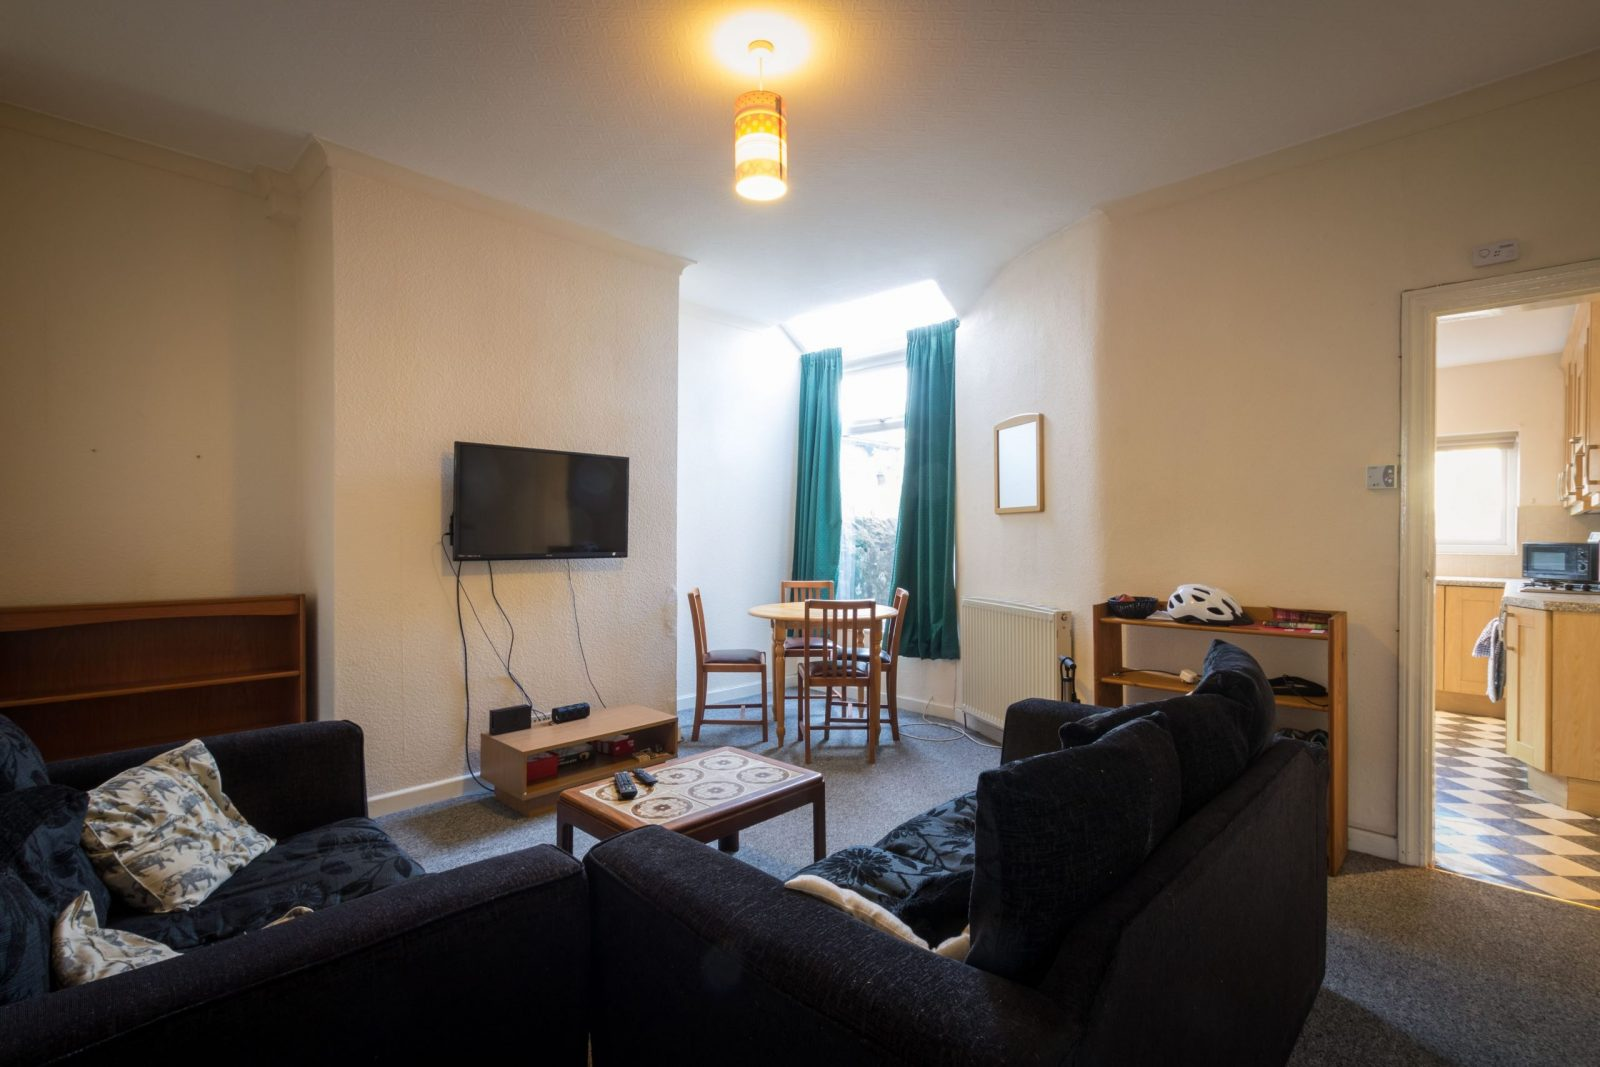 47 Ulster Road Lancaster Student Accommodation